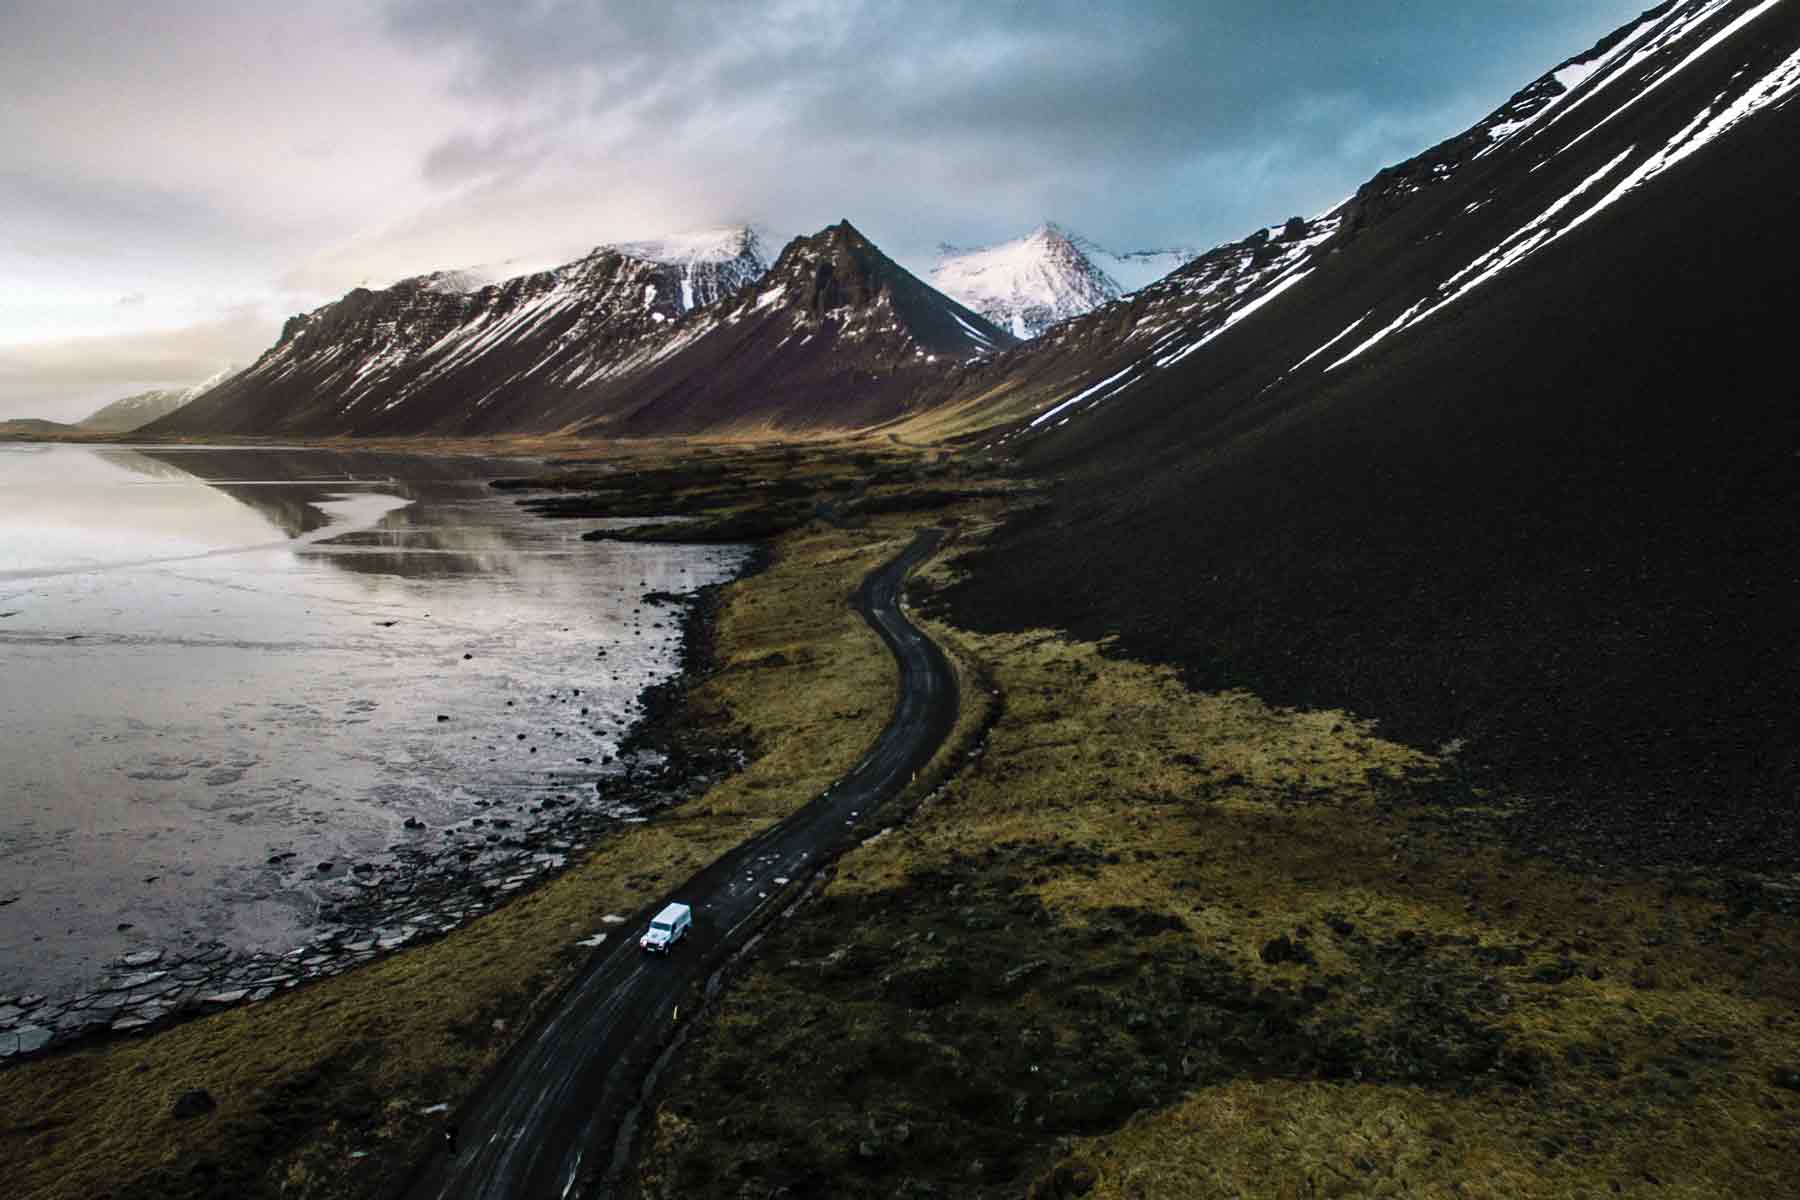 The Icelandic solitude makes for one of the world's most fascinating natural landscapes | Photo: Andre Filipe via Unsplash.